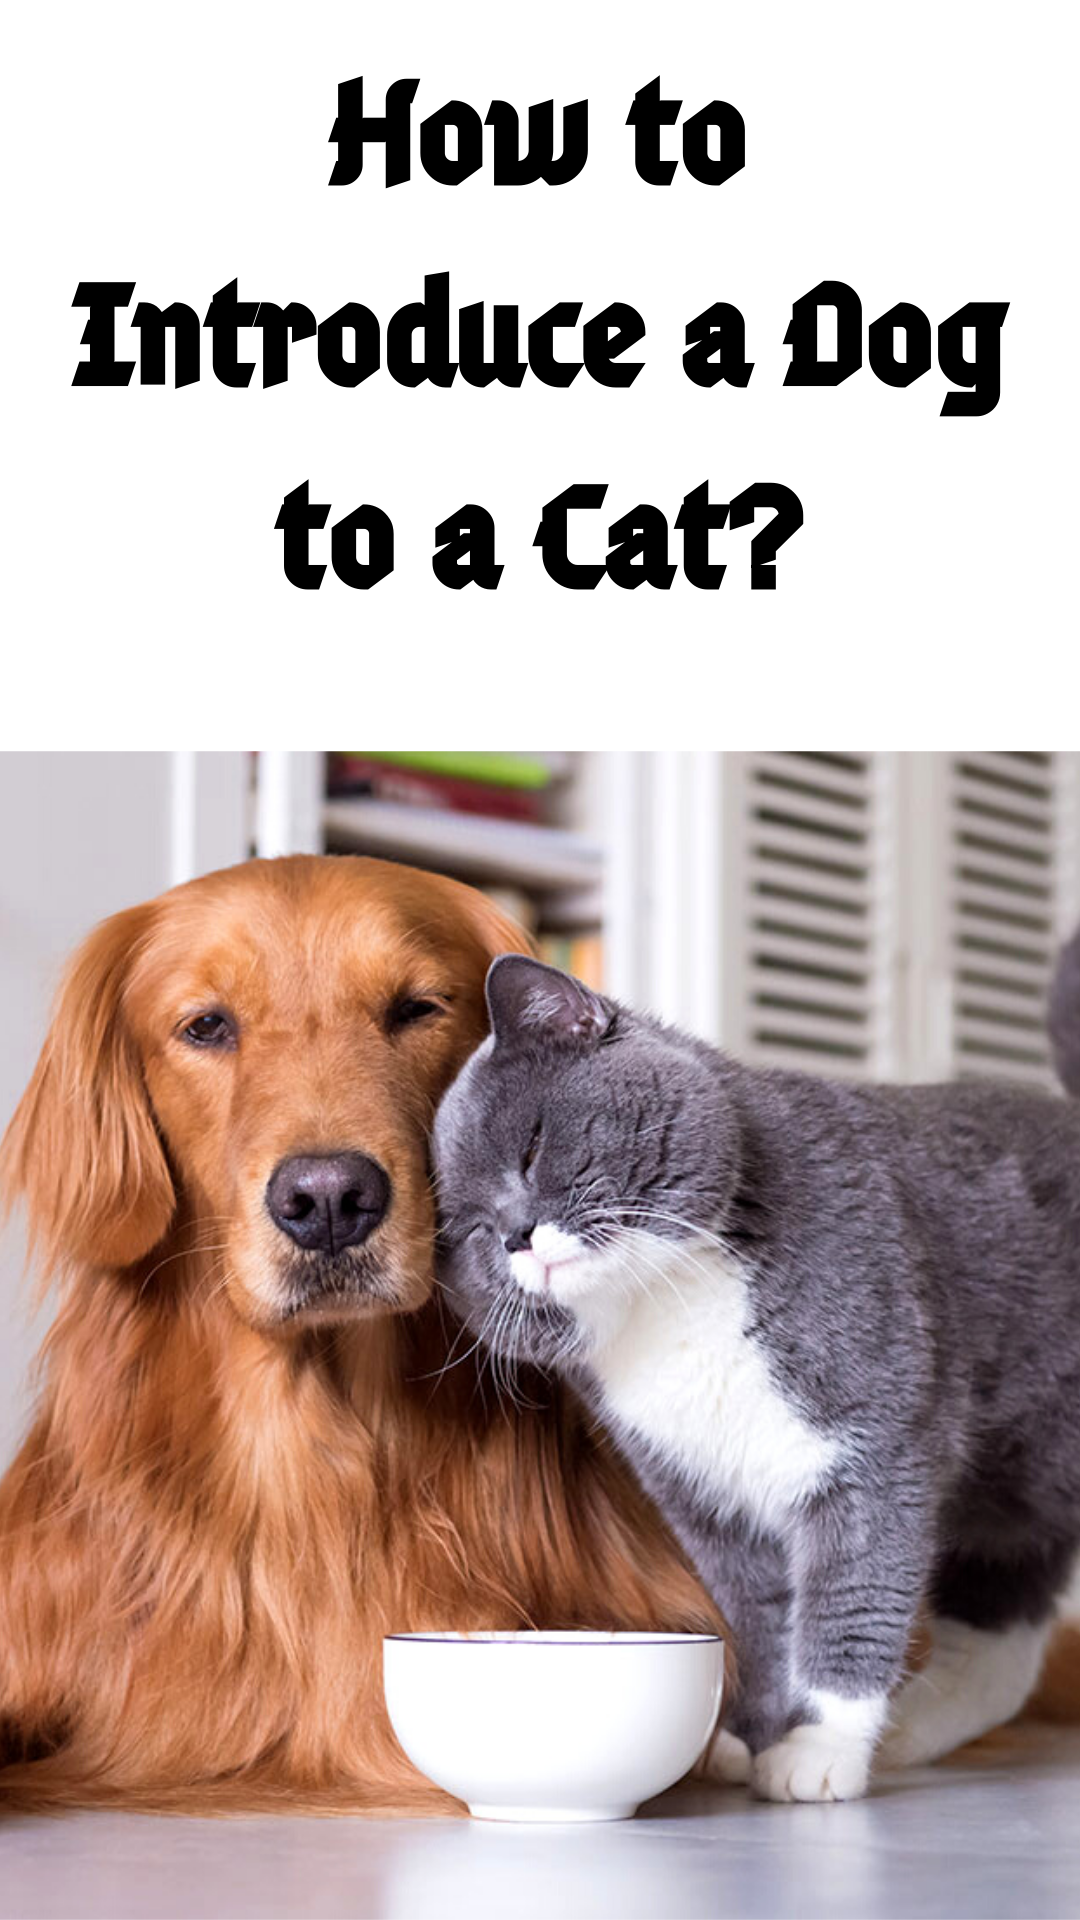 How To Introduce A Dog And Cat Getting Started Make Sure The Cat Has Access To A Dog Free Sanctuary At All Times Keep The Pets Separate A Dogs Cat Care Cats